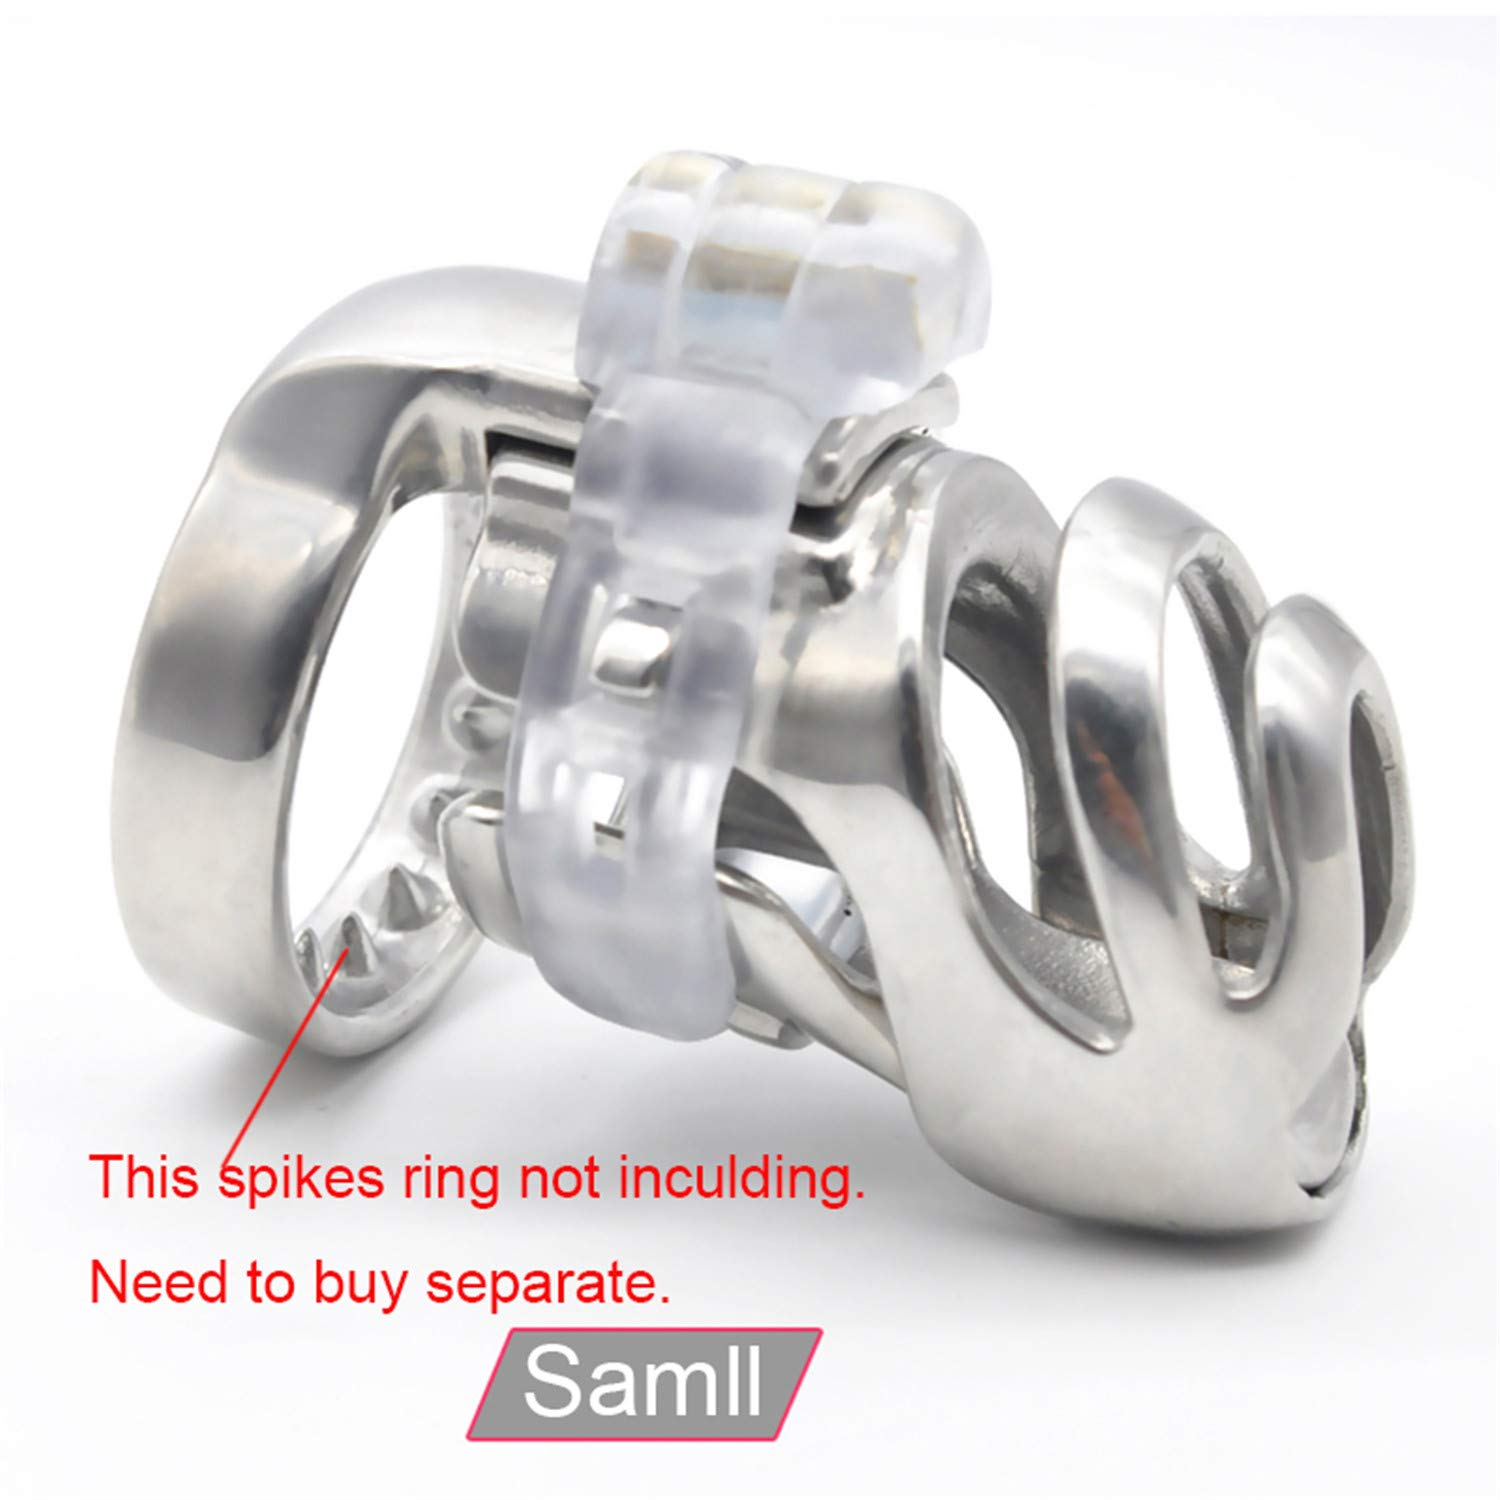 SCGOLD Wonderful 67Mm31Mm Small Size Chastity Device Adult Cock Cage Sex Toy 316L Stainless Steel Chastity Belt Sex Toy 48mm by SCGOLD (Image #5)